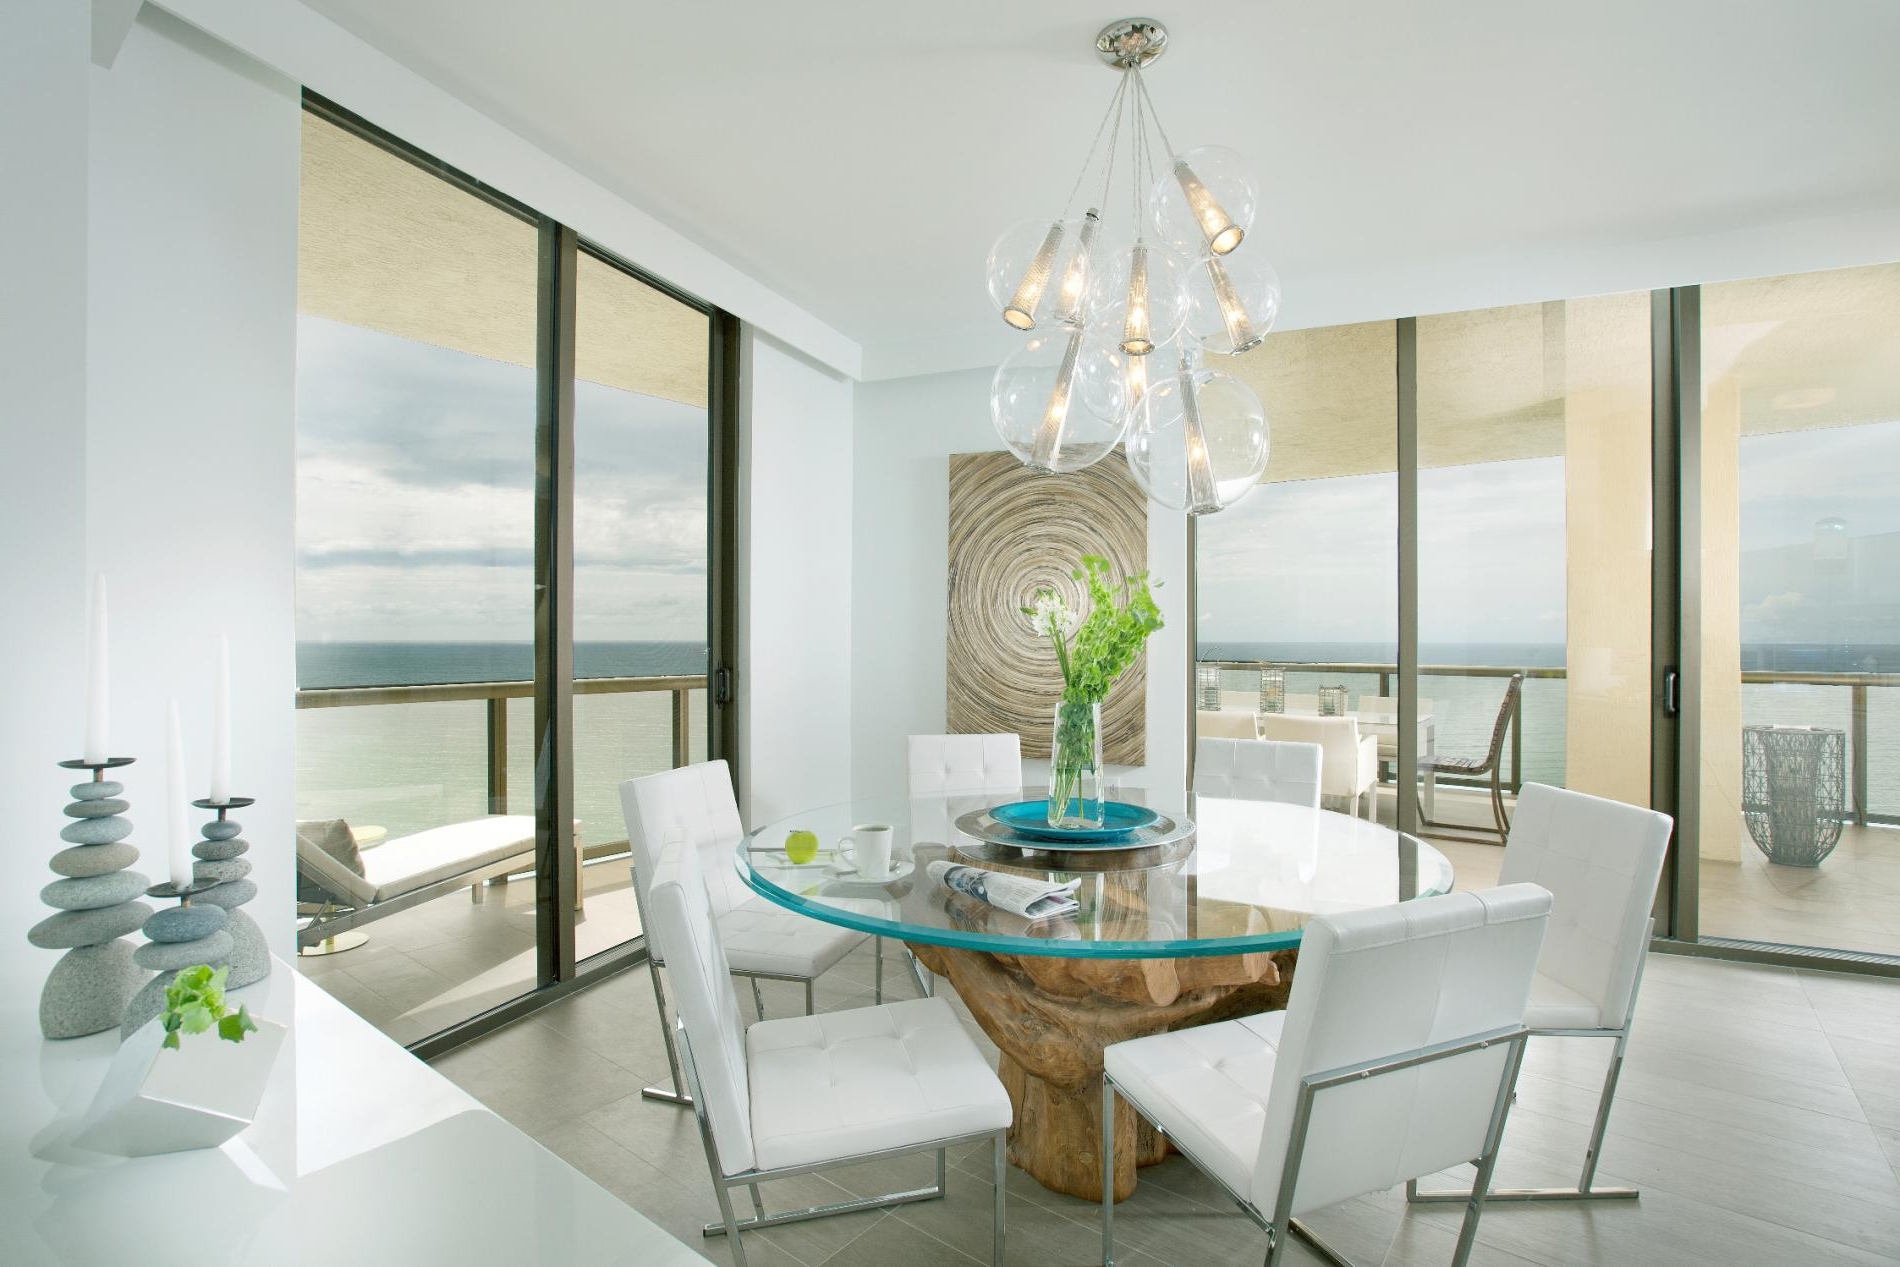 15 Elegant And Sophisticated Round Dining Tables For Your House In Favorite Elegance Small Round Dining Tables (View 28 of 30)